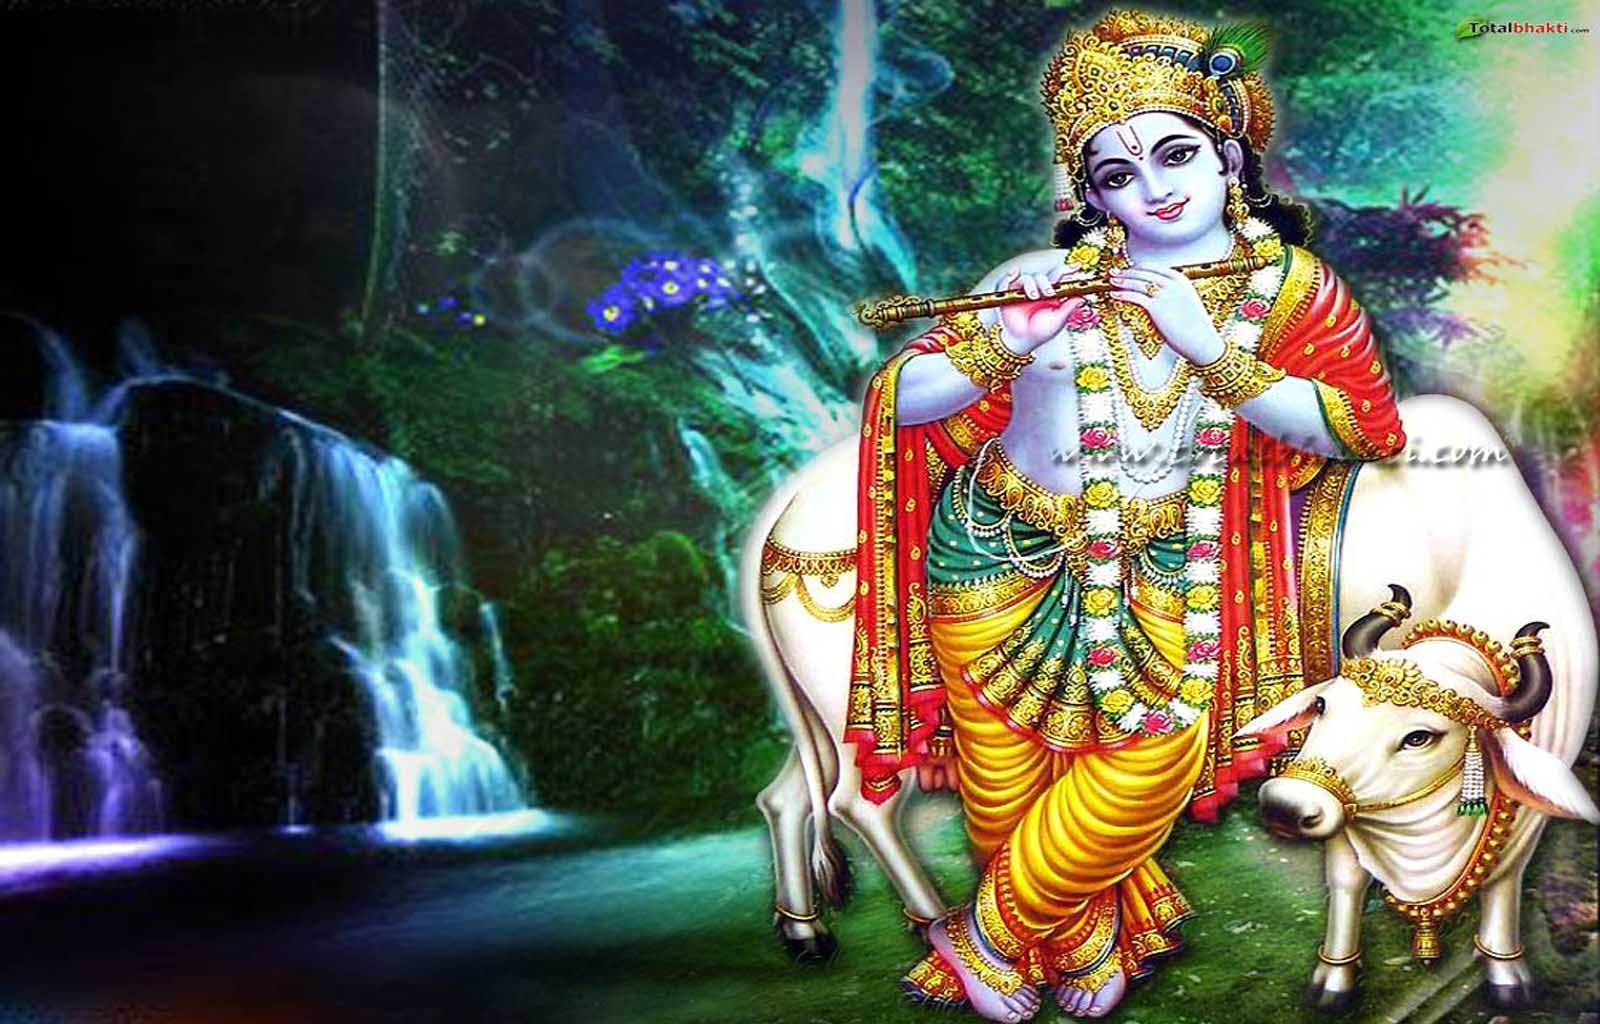 Lord Krishna Wallpapers 2015 - Wallpaper Cave